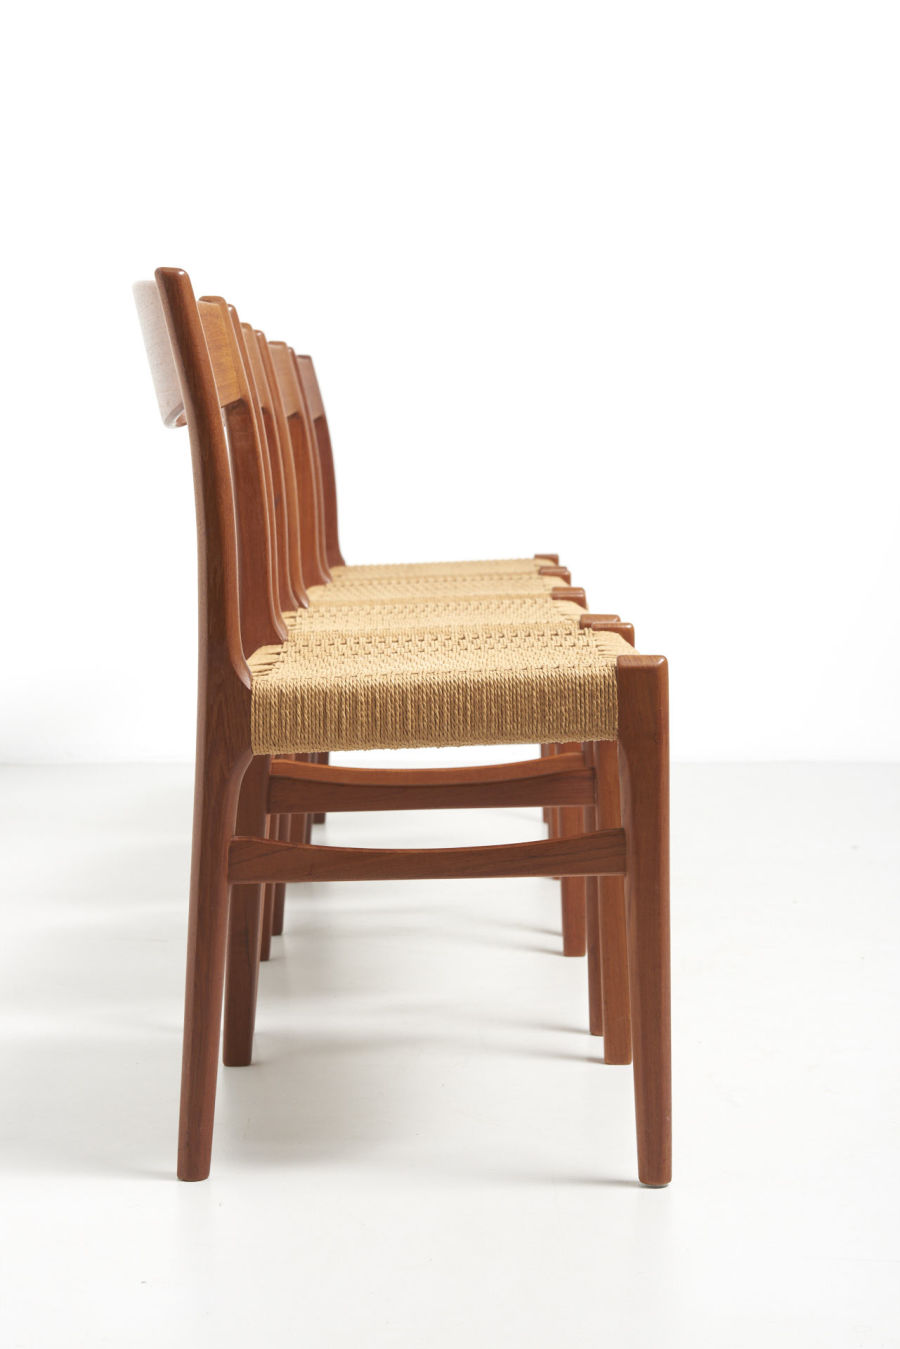 modestfurniture-vintage-2193-chairs-glyngore-papercord03